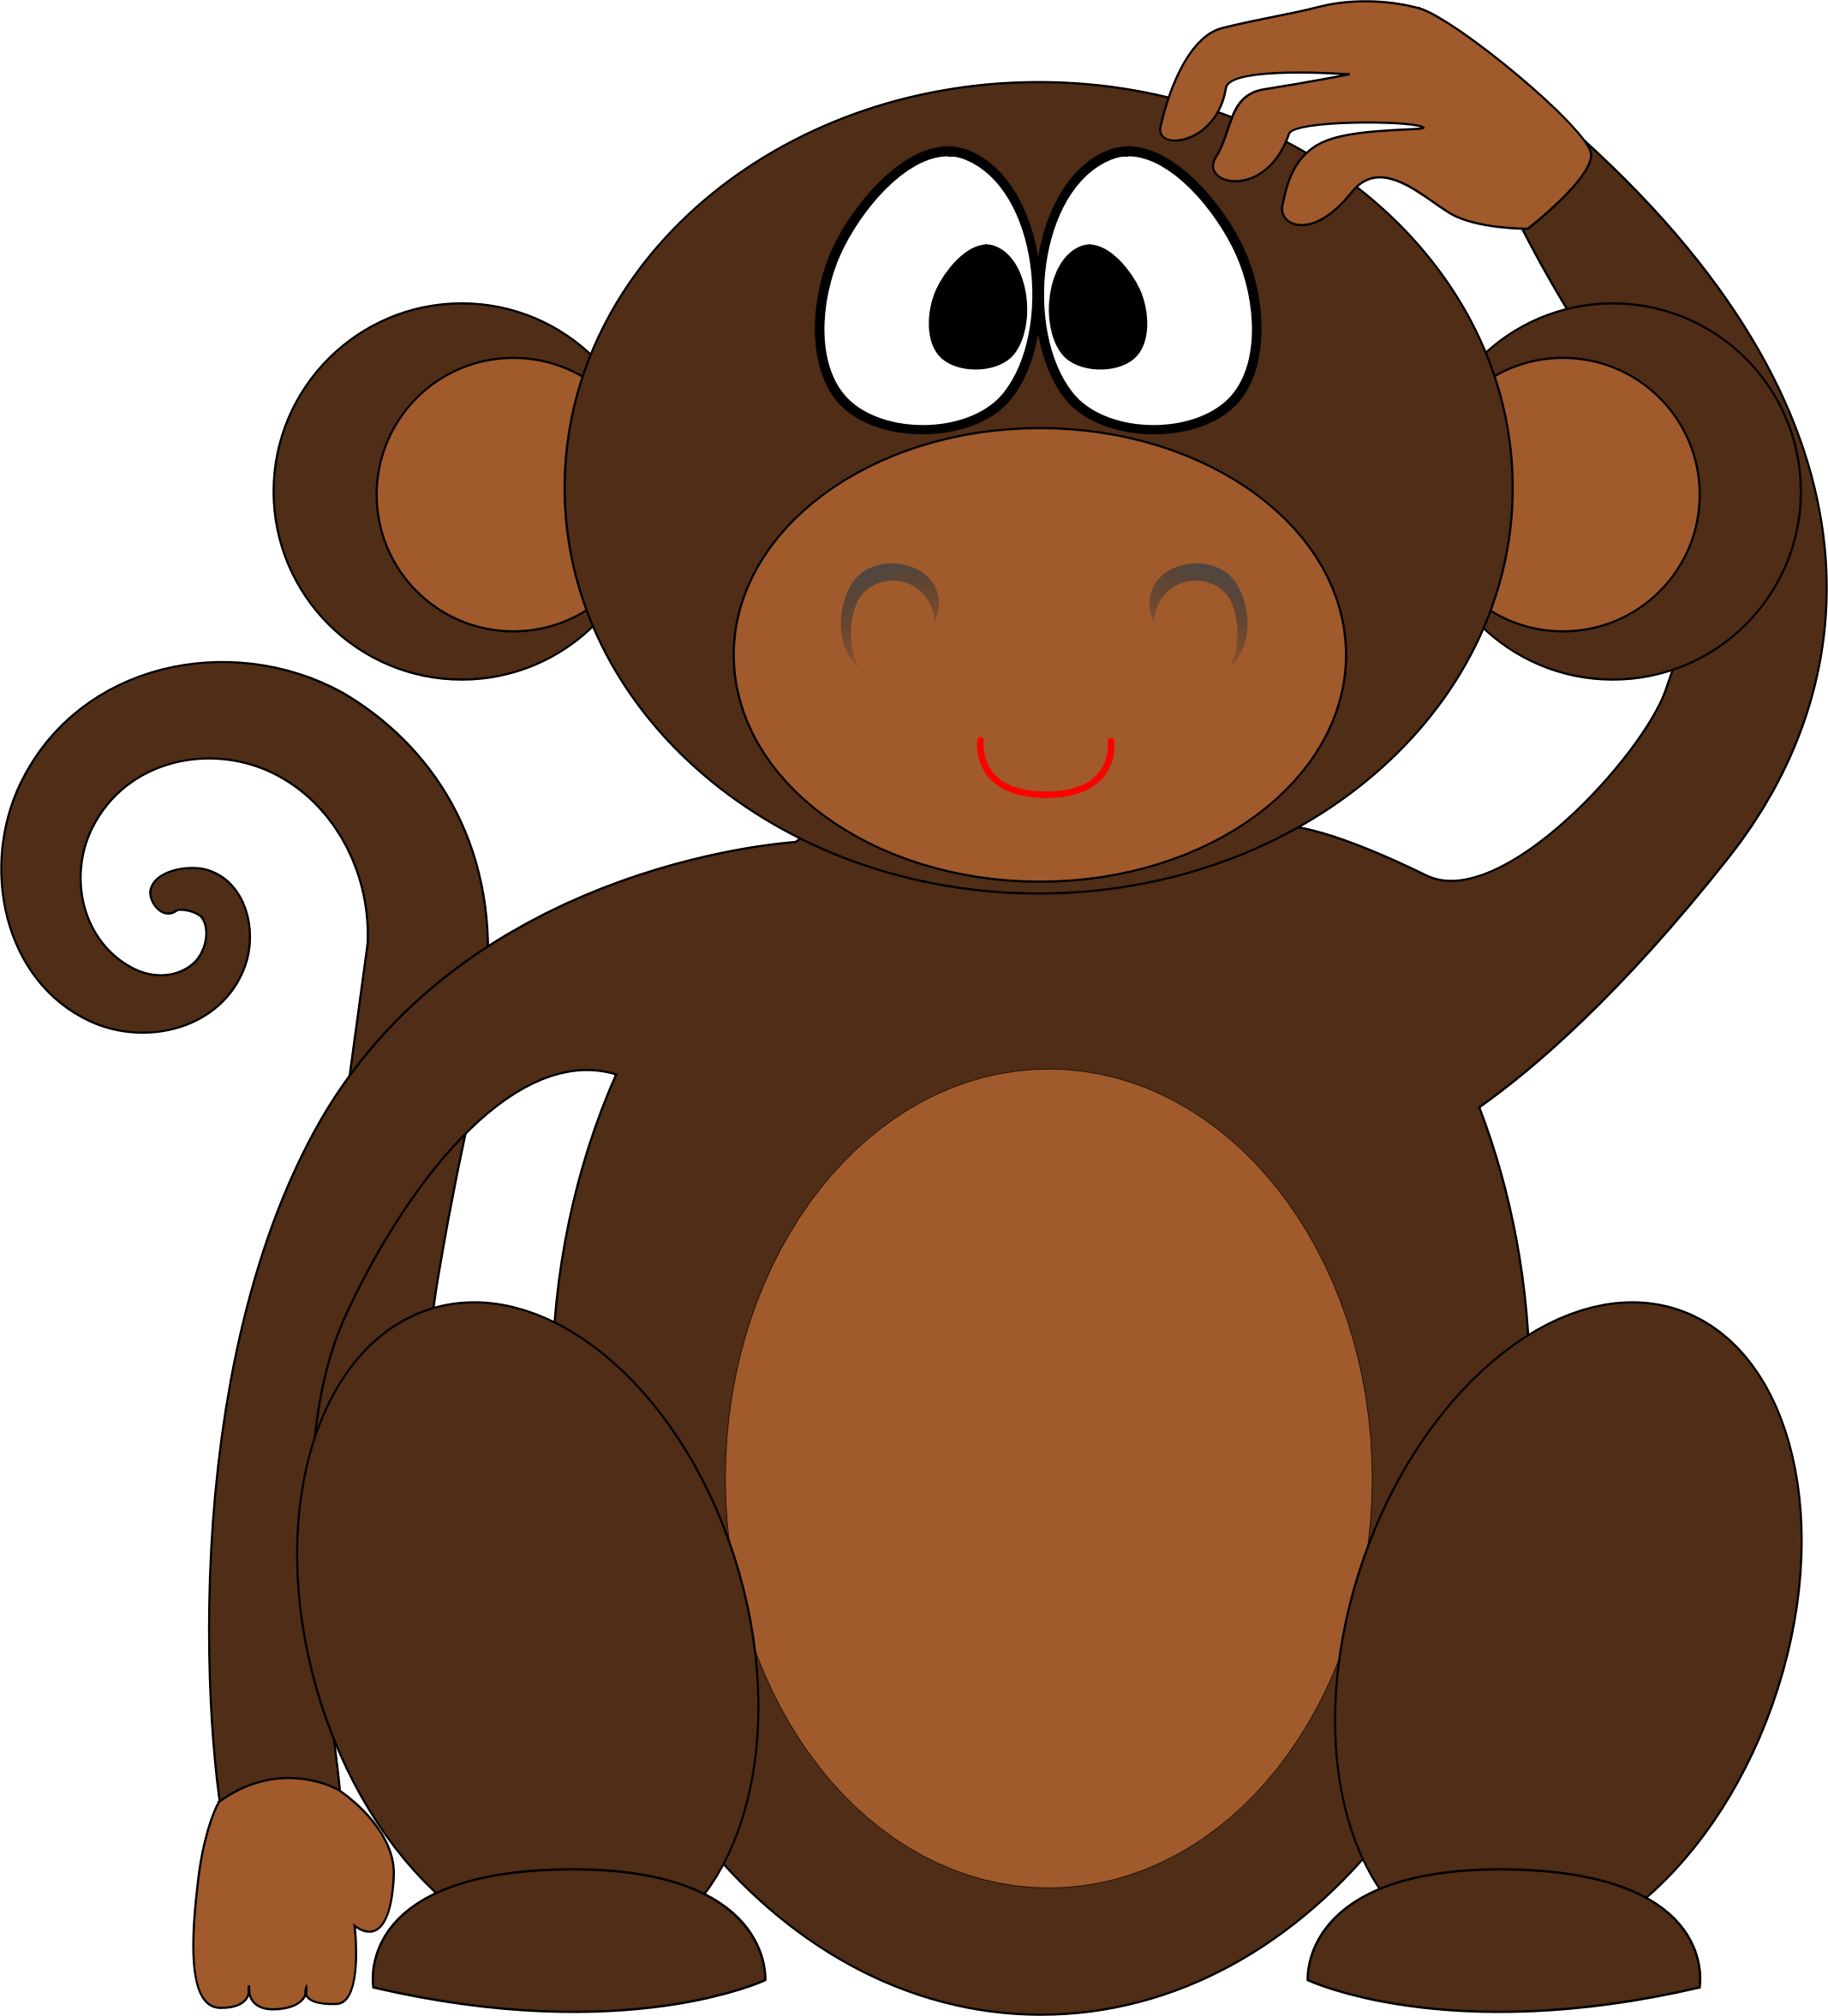 jpg black and white download Cartoon monkey big image. Ape clipart easy.